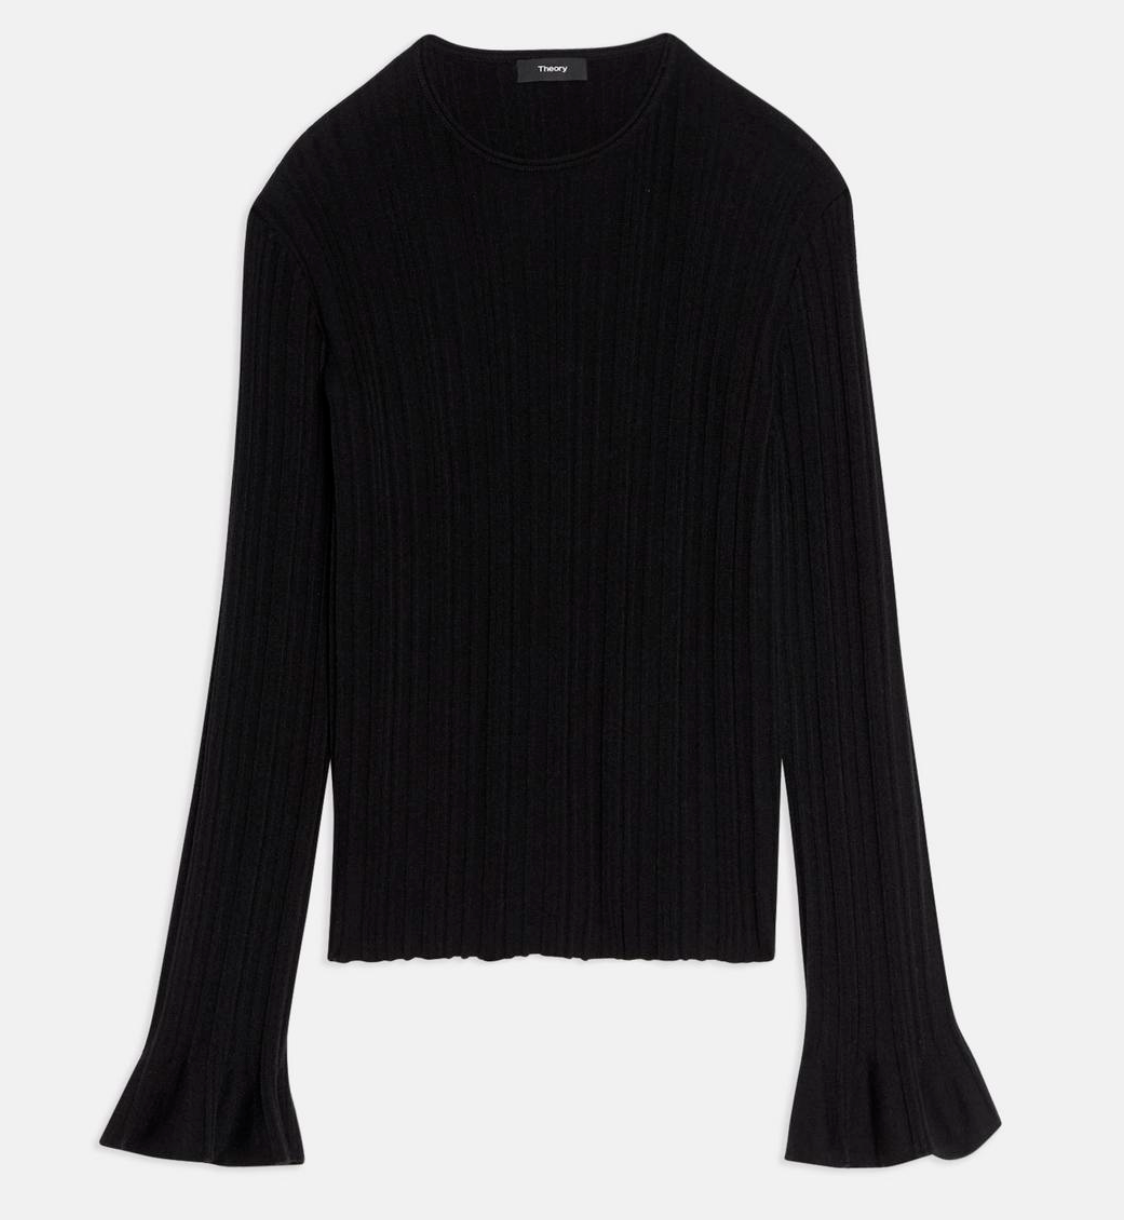 Theory Linear Knit Top in Stretch Wool Blend